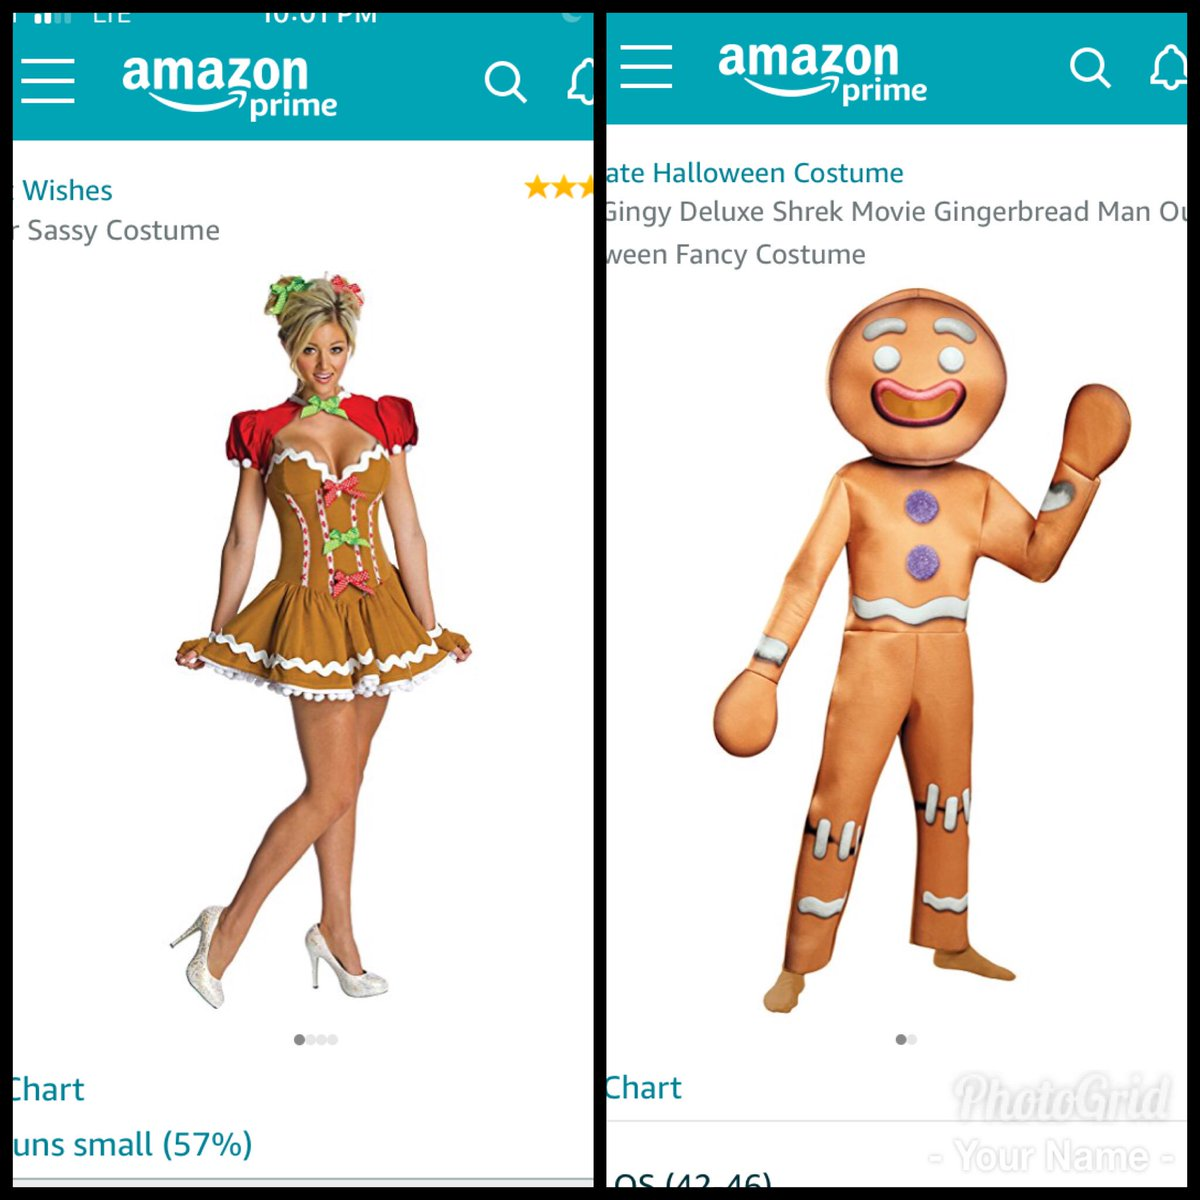 amber hunt on twitter its time for my annual screw womens halloween costumes post my kid wants me to be a gingerbread man to his fox